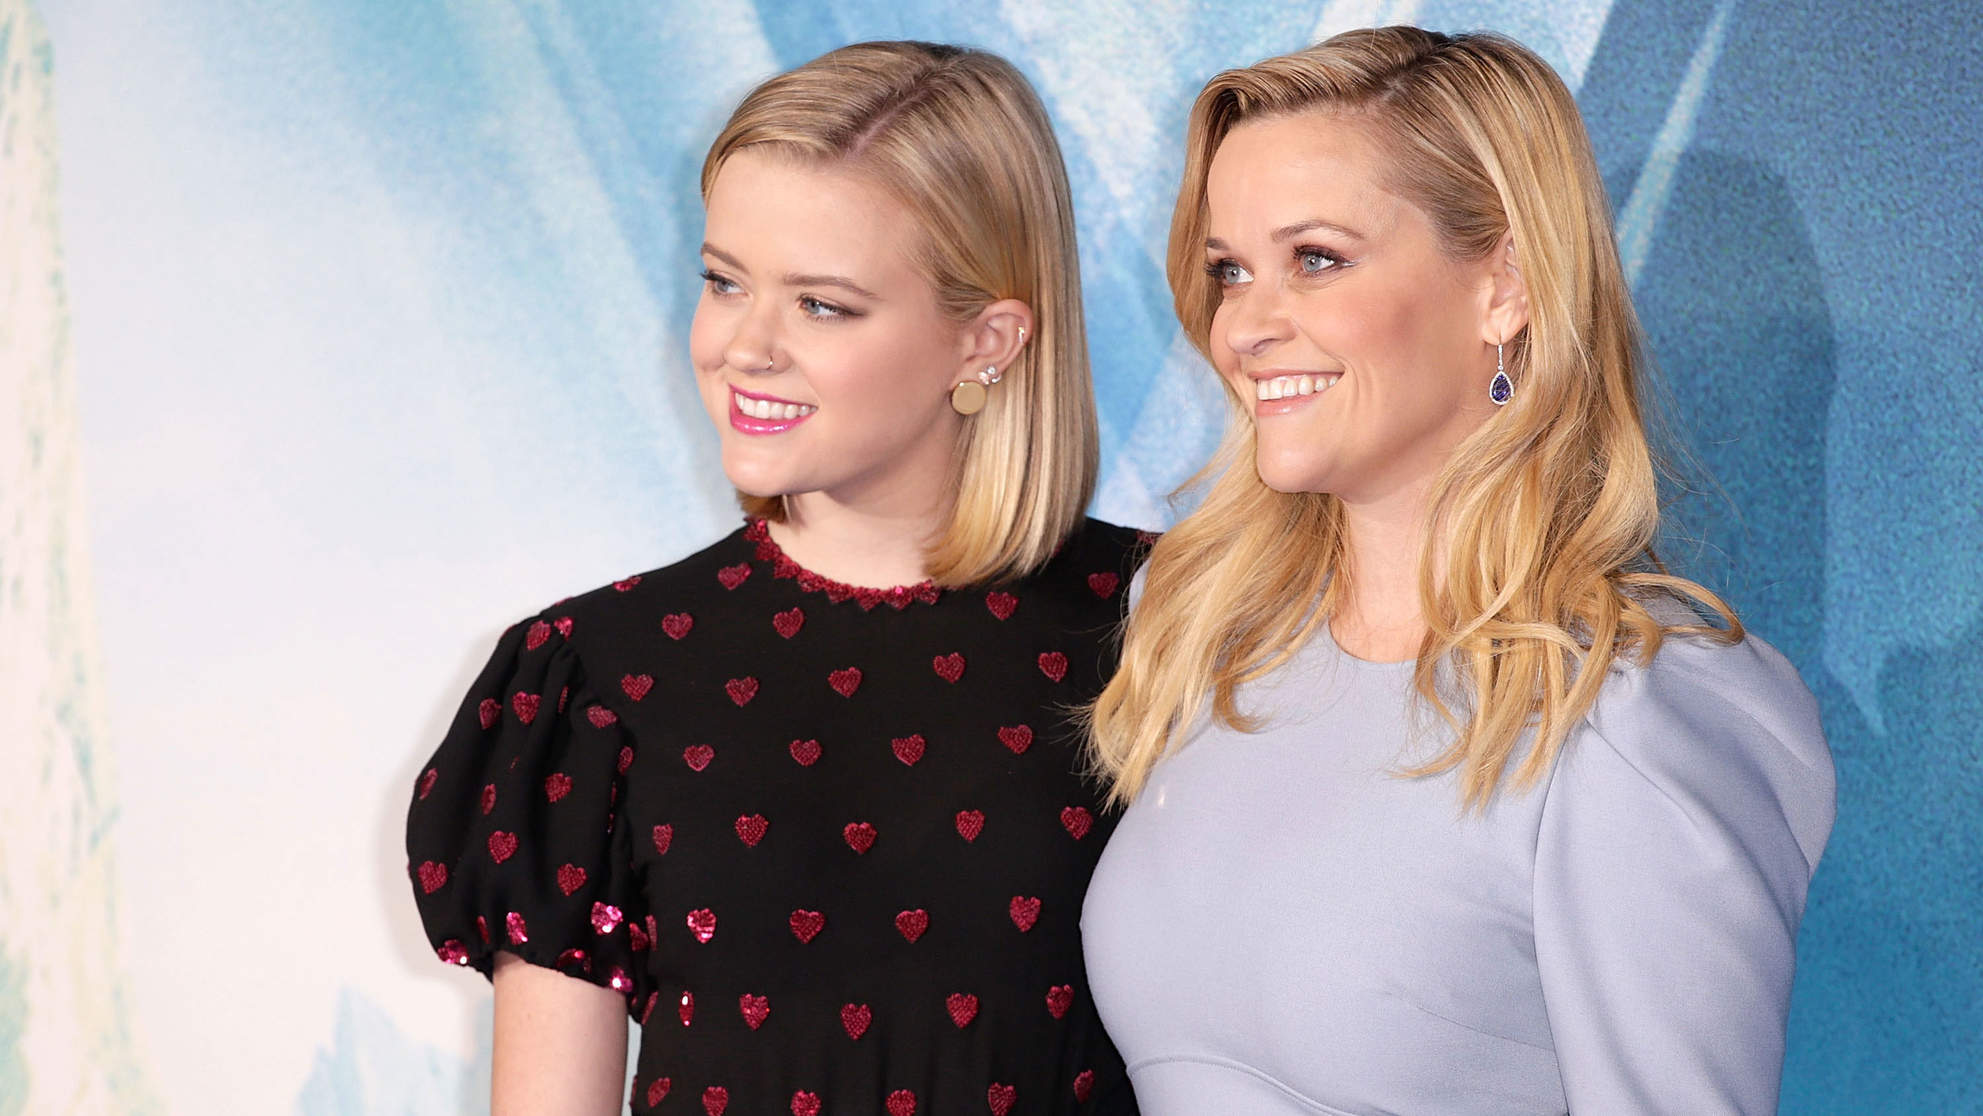 Reese Witherspoon's Daughter Just Debuted The Most Adorable Bob—And Now She Looks Even More Like Mom